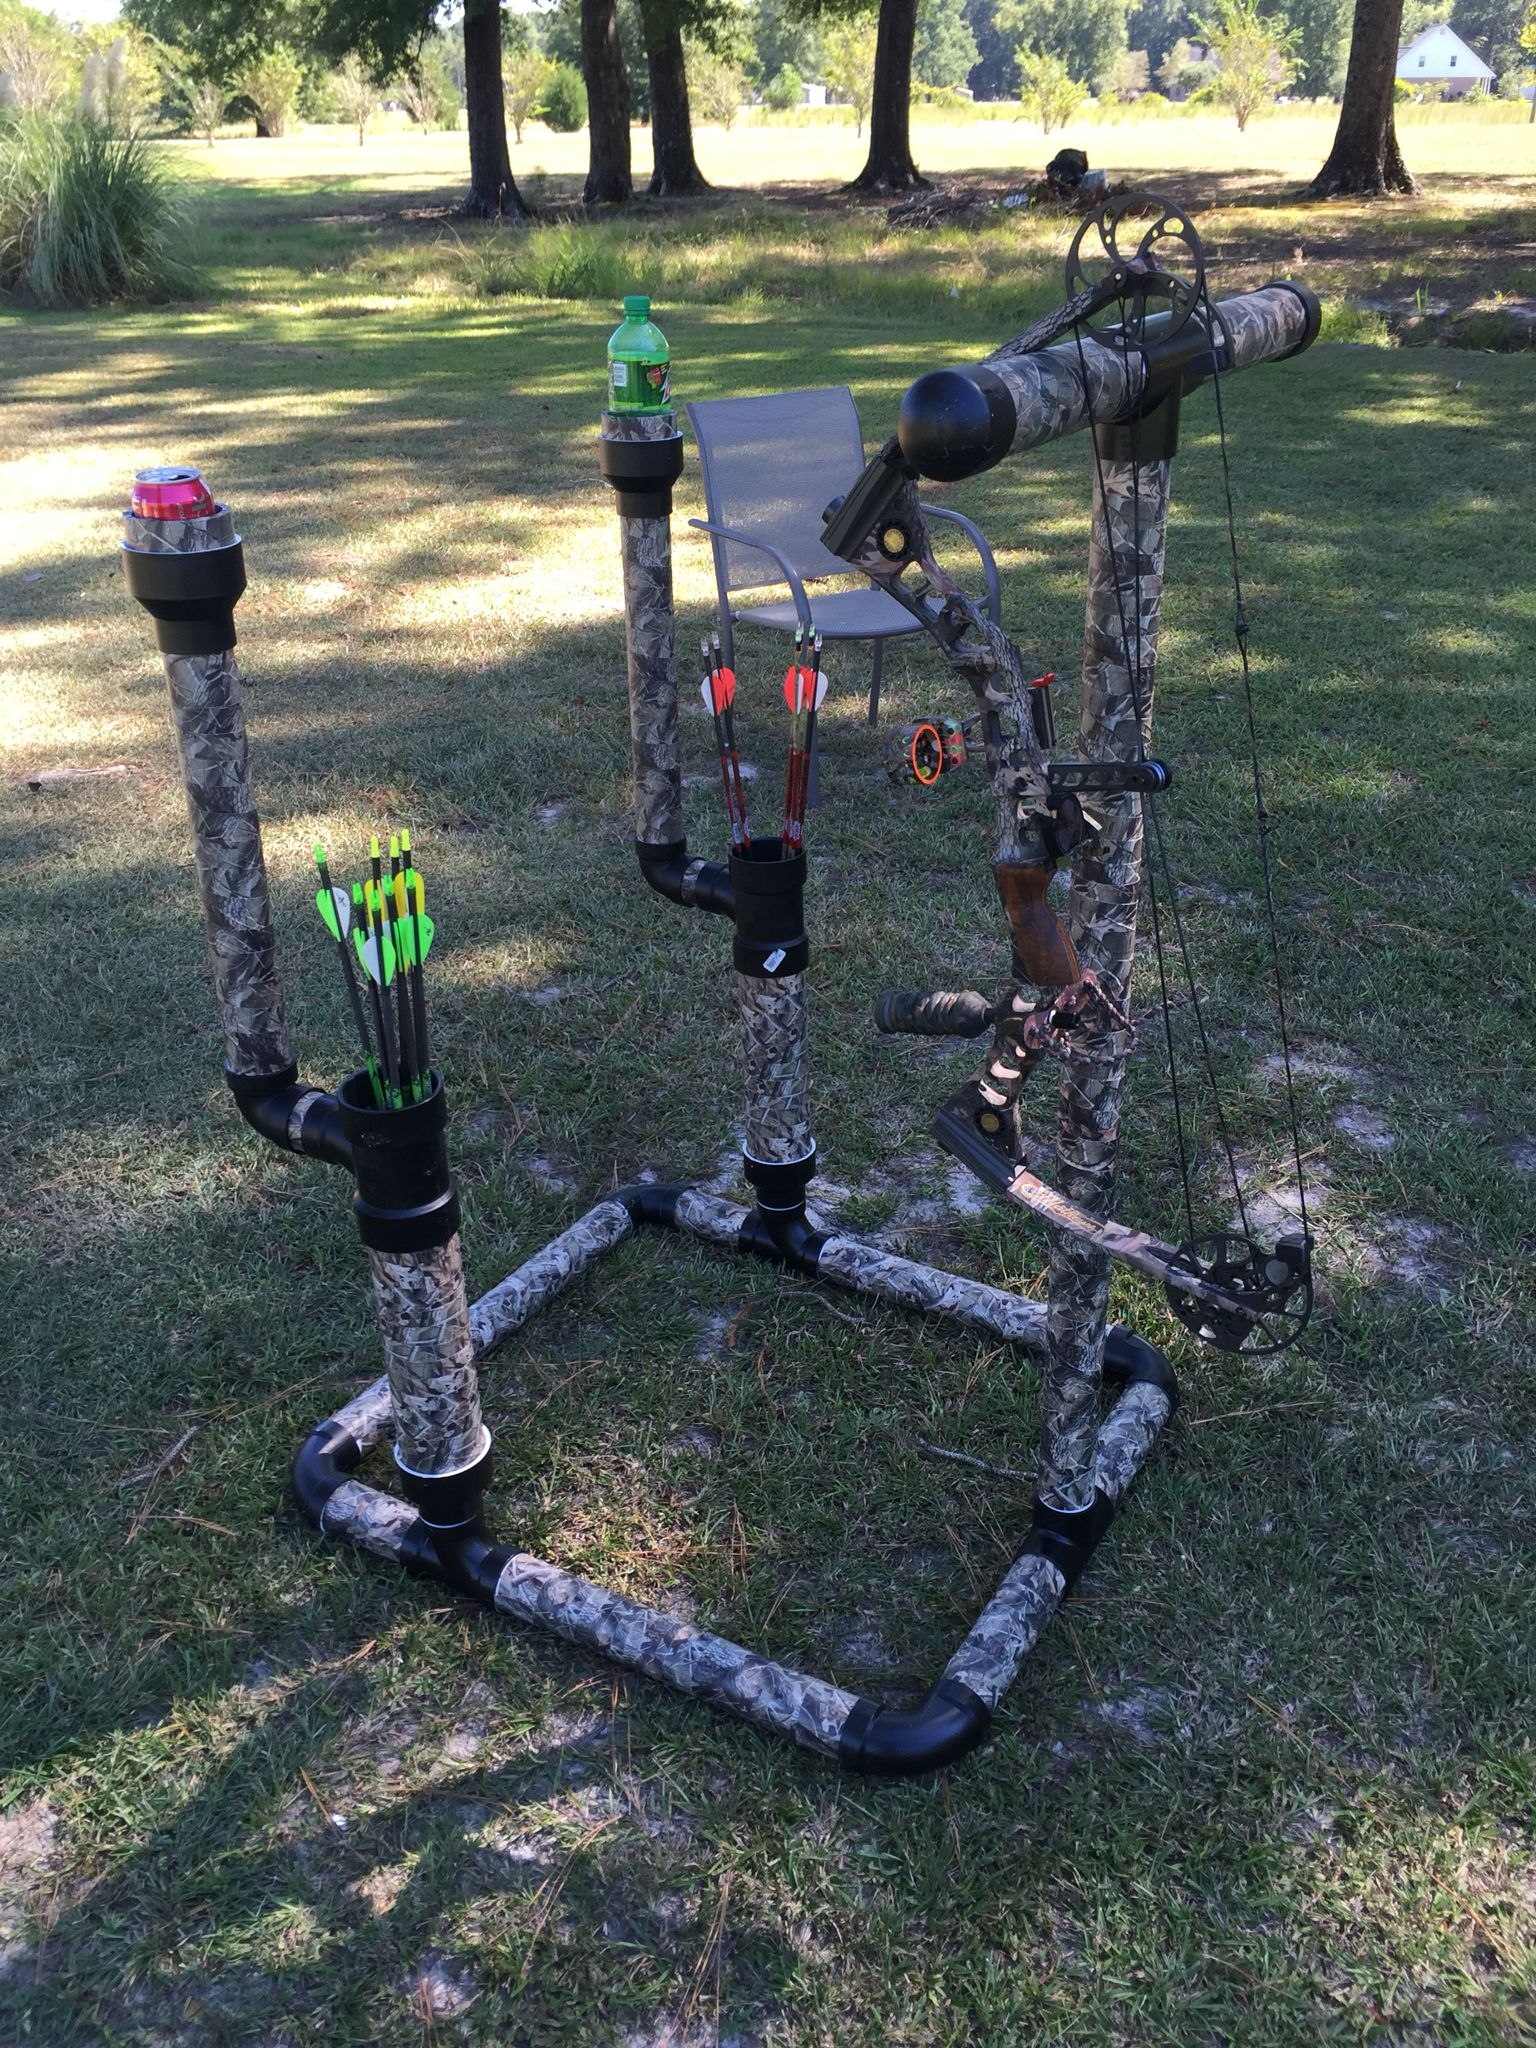 Deer skinning pole plans - Diy 2 Pvc Bowstand With Drink Holders 3 Pvc Arrow Quivers To Hold